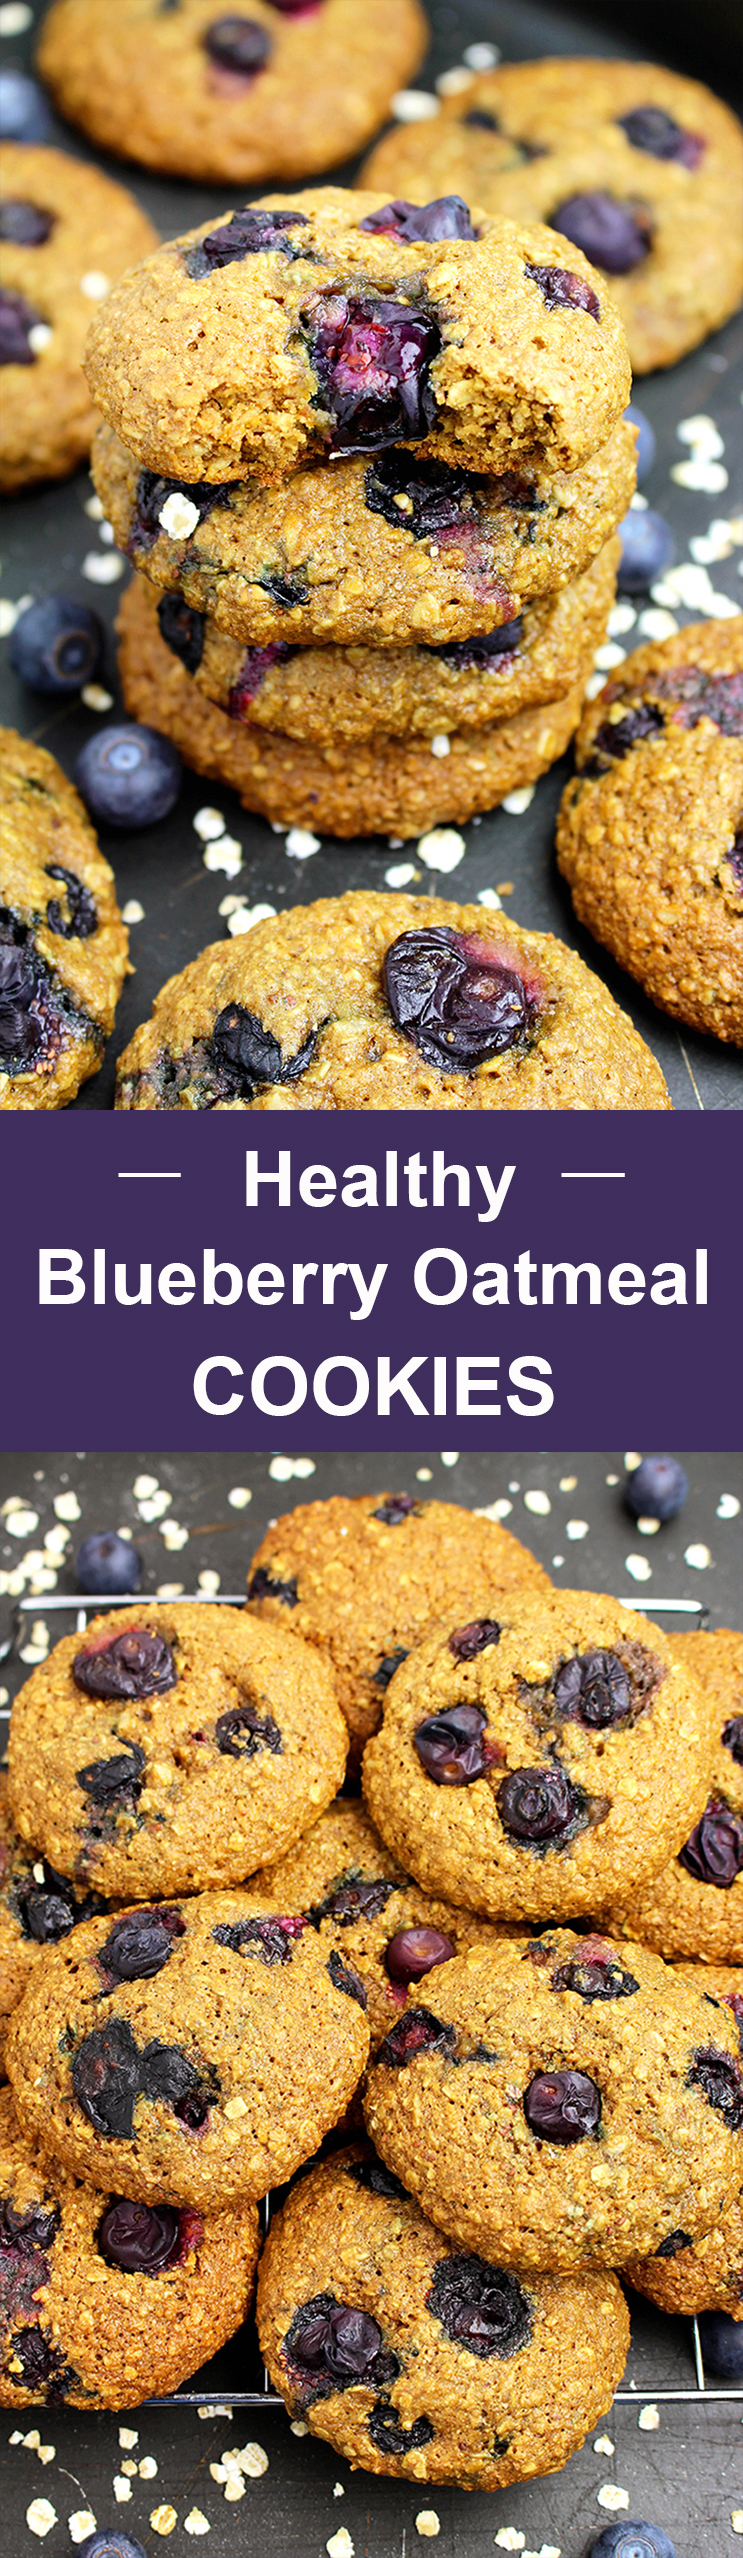 Untitled-11 Healthy Blueberry Oatmeal Cookies